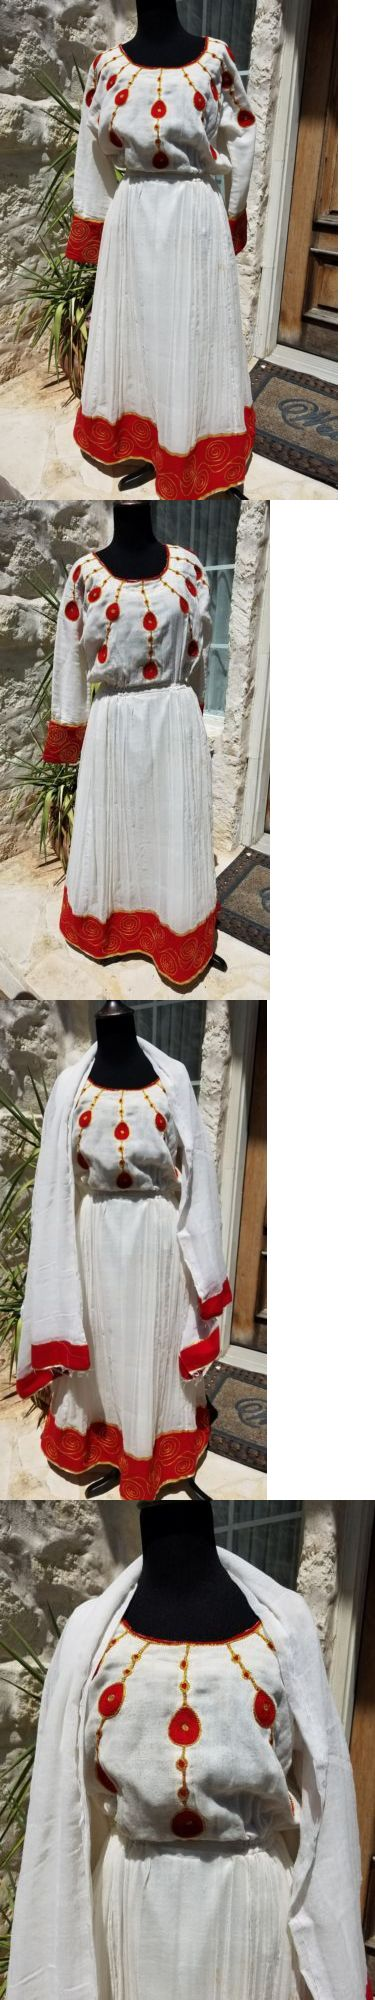 Africa 155241: Traditional Embroidered Ethiopian Habesha Eritrean Dress 2 Piece 100% Cotton -> BUY IT NOW ONLY: $224.99 on eBay!